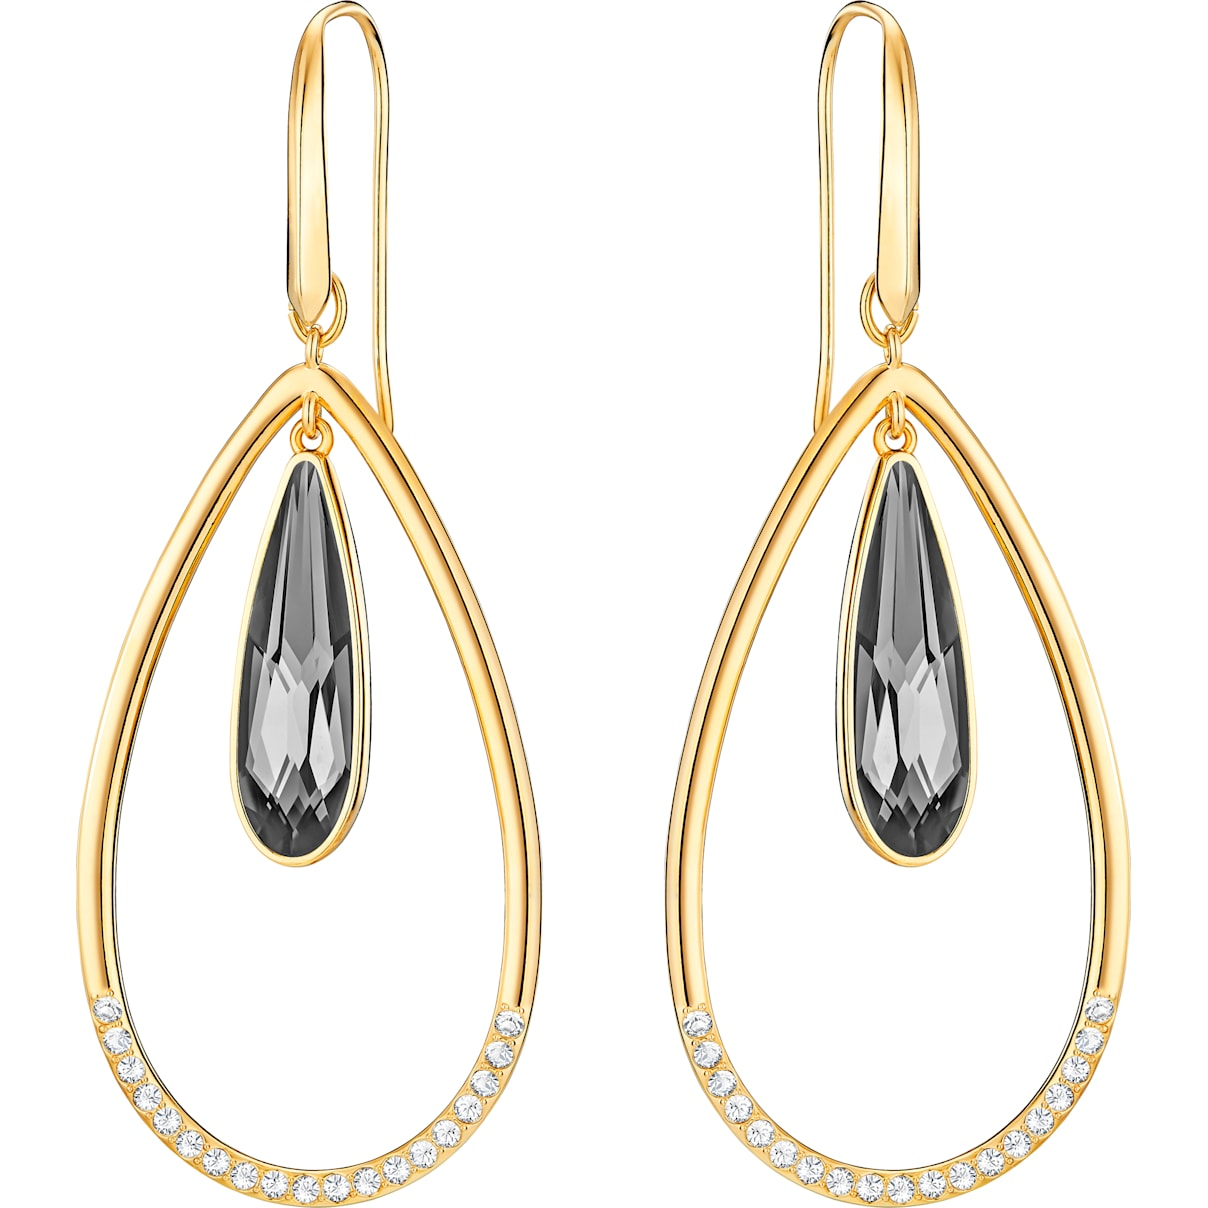 Swarovski Lisanne Hoop Pierced Earrings, Gray, Gold-tone plated